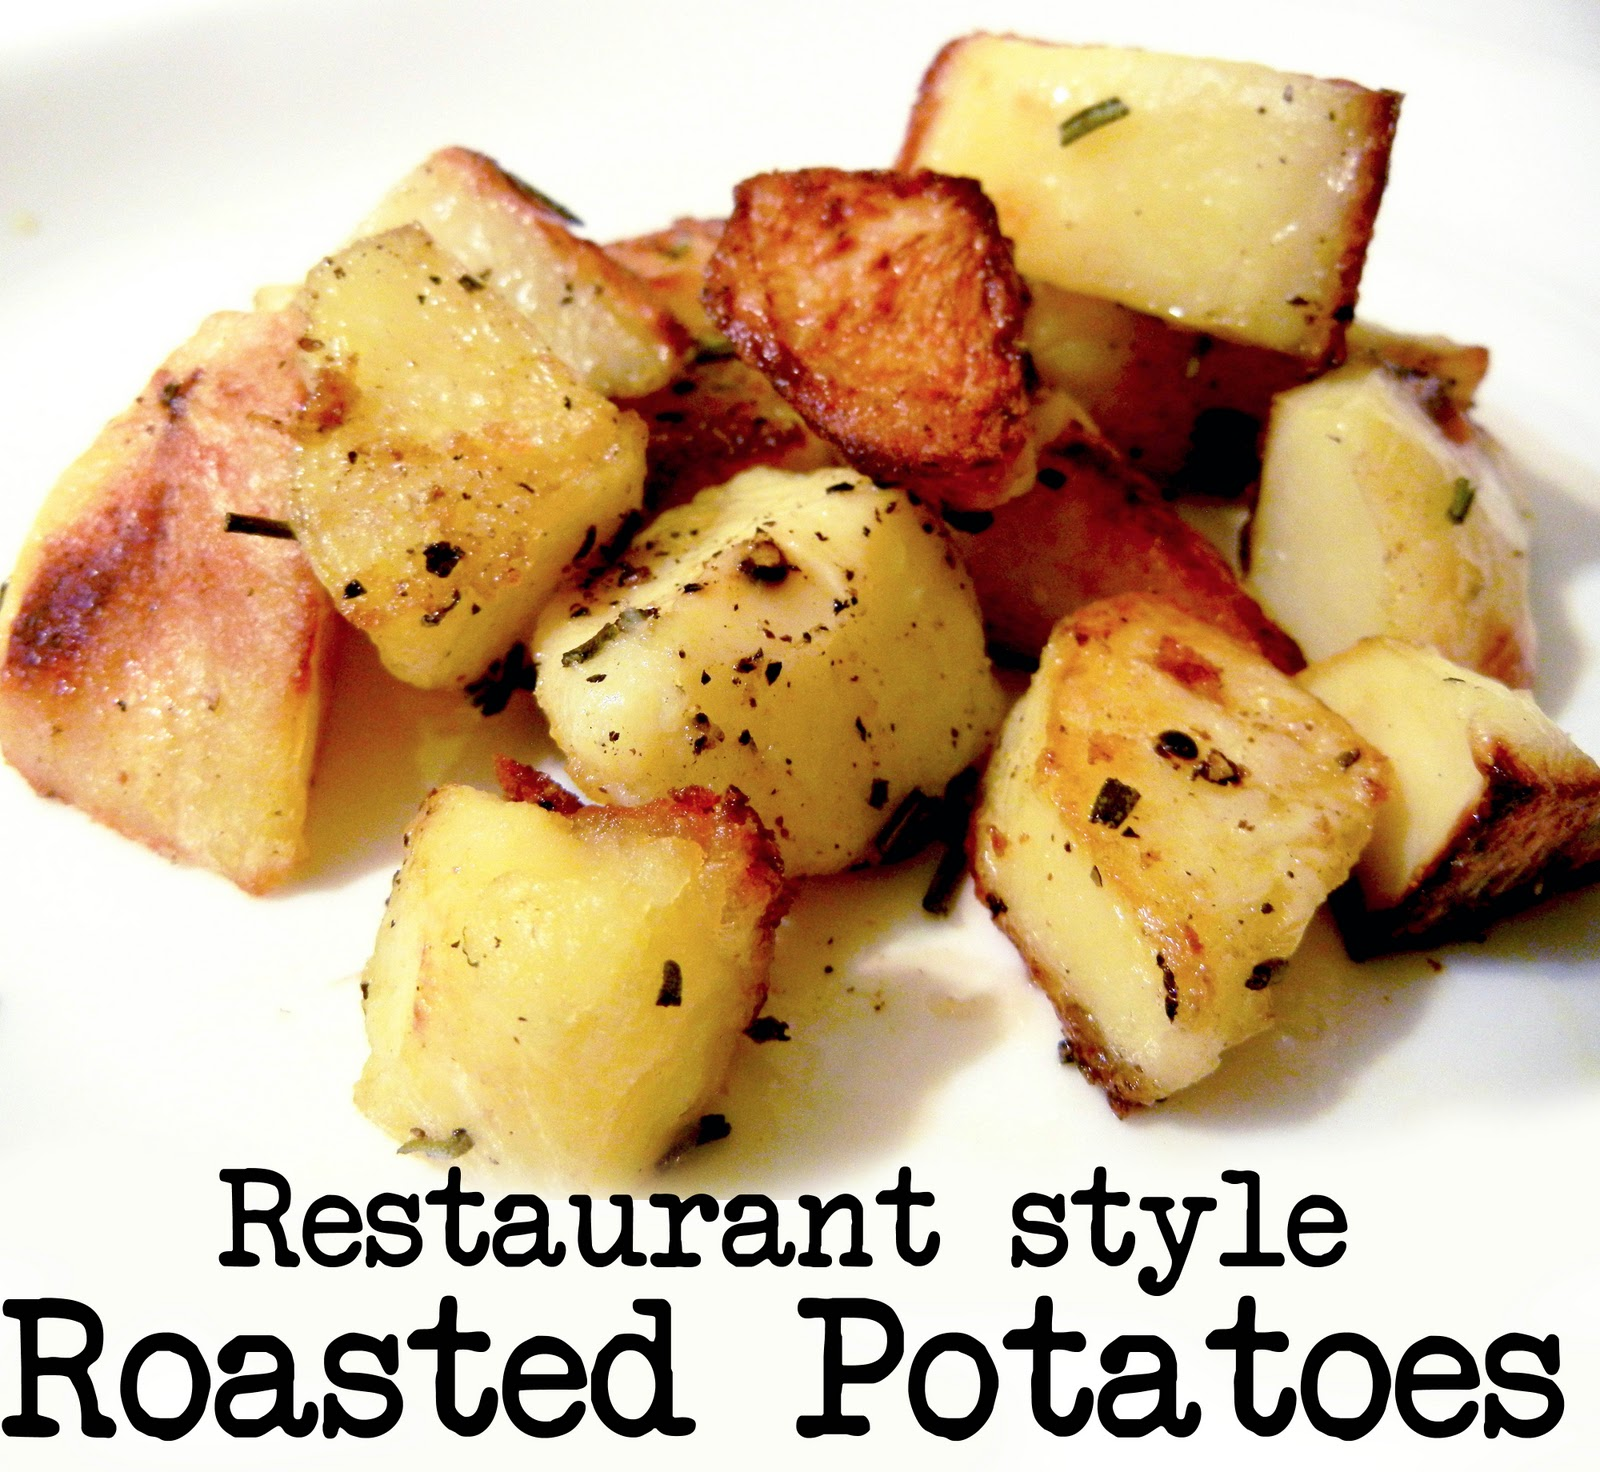 Derek's Kitchen: Restaurant Style Roasted Potatoes